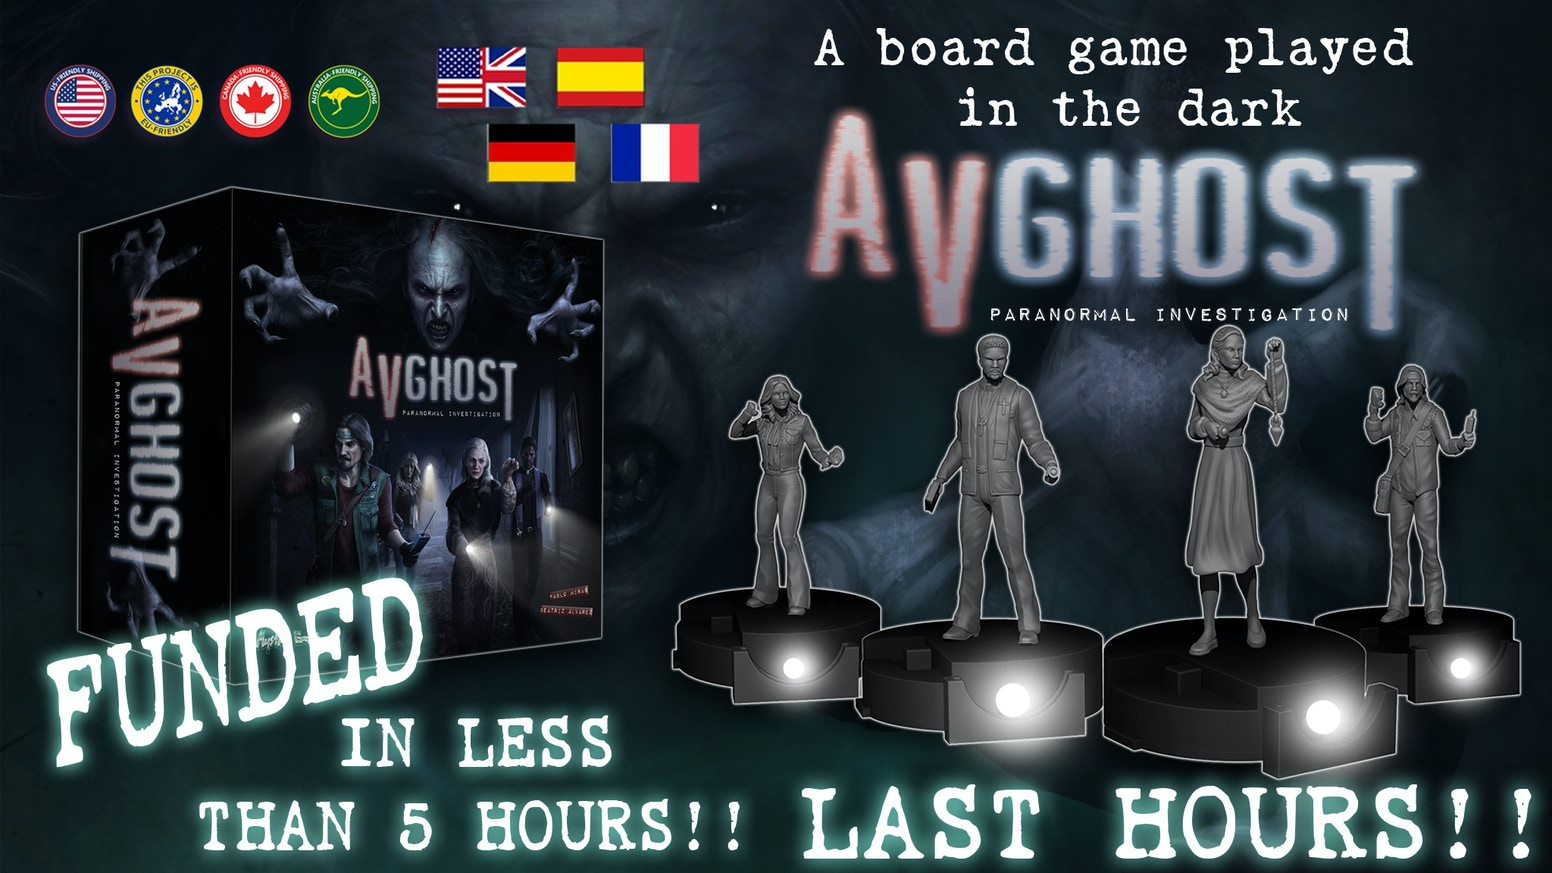 Horror investigation experience. A board game played in the dark.